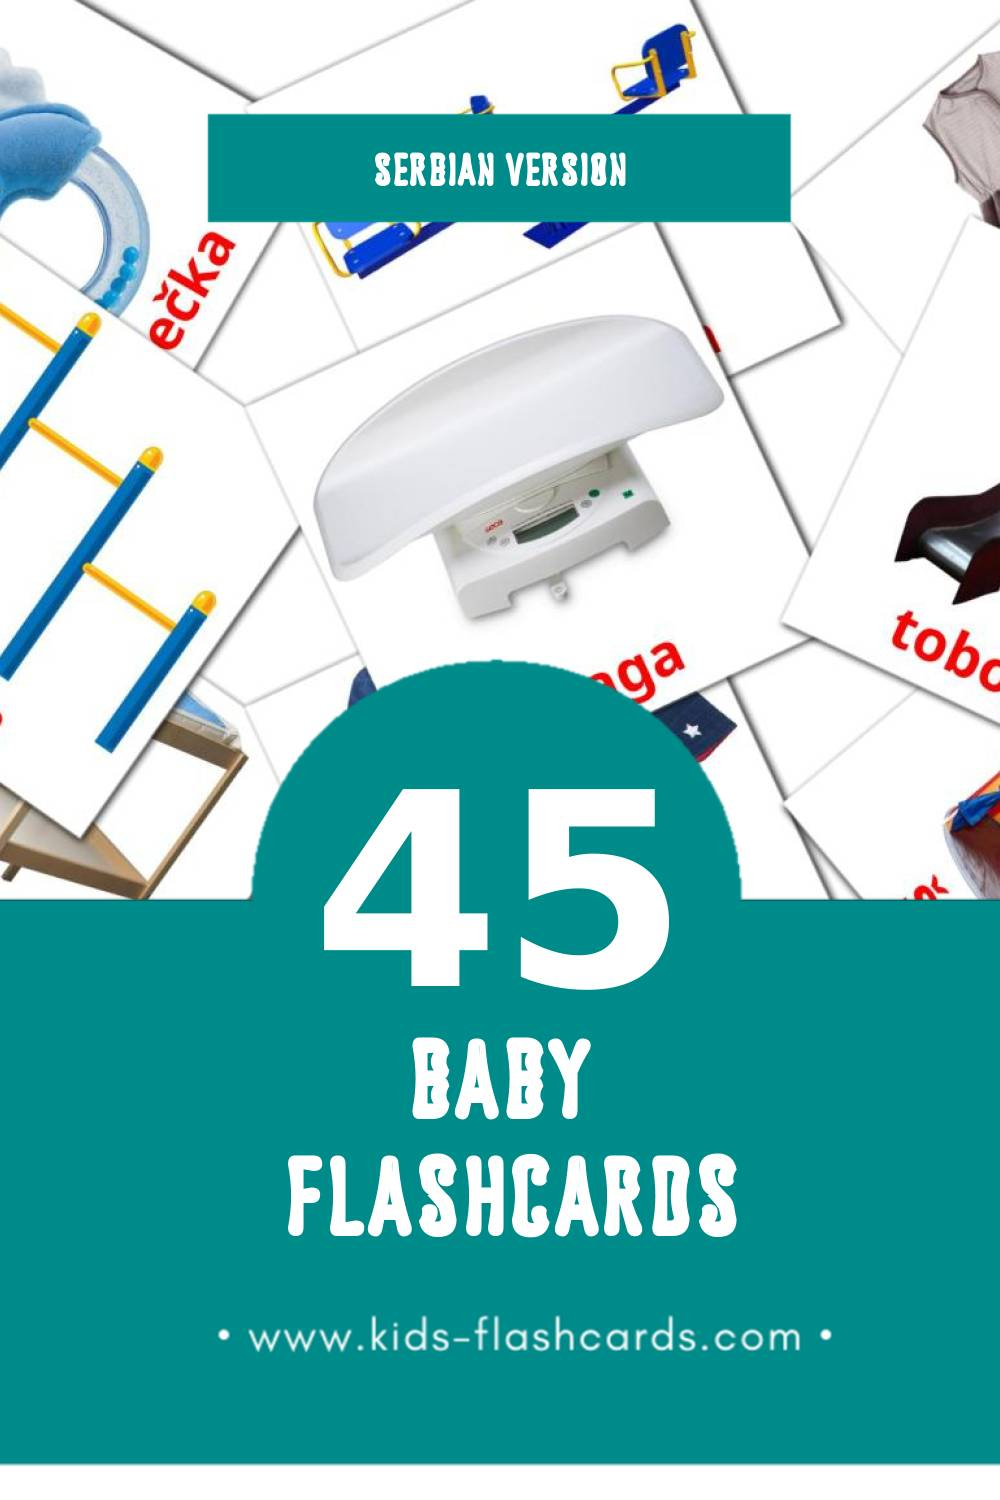 Visual Beba Flashcards for Toddlers (45 cards in Serbian)